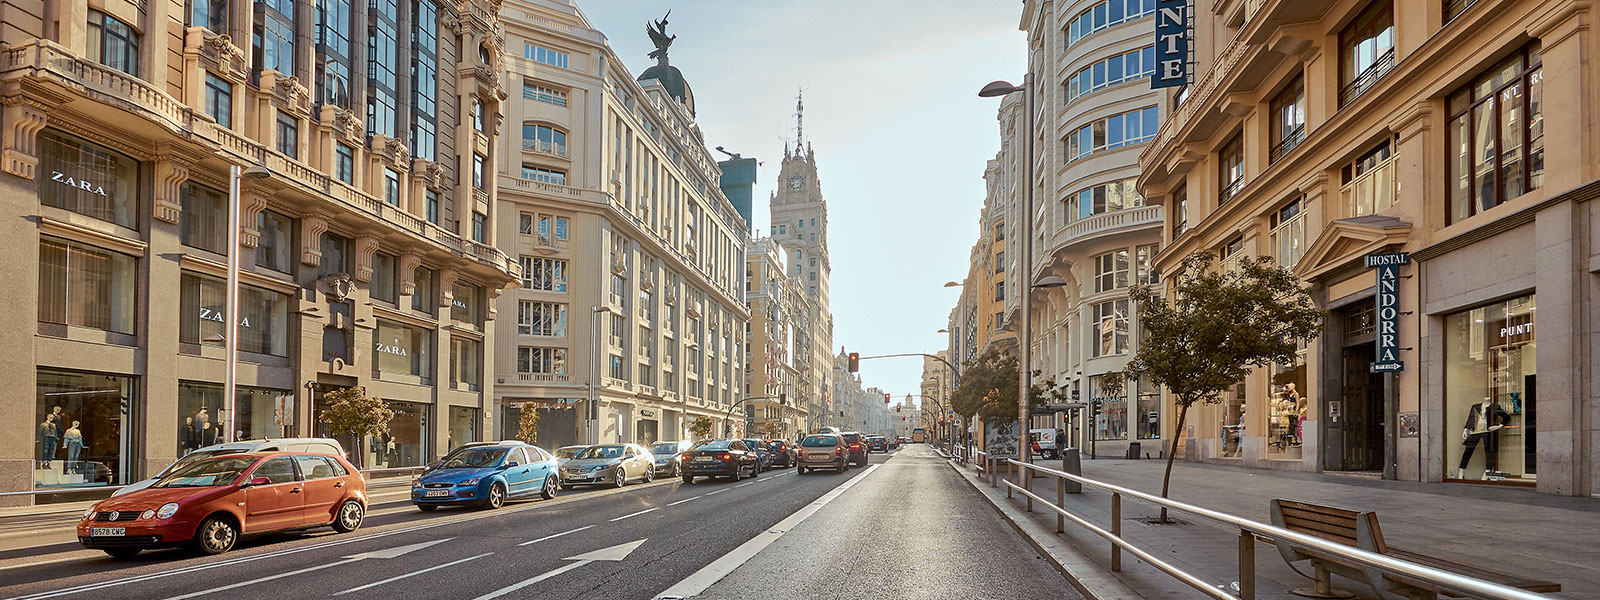 best-street-madrid-location